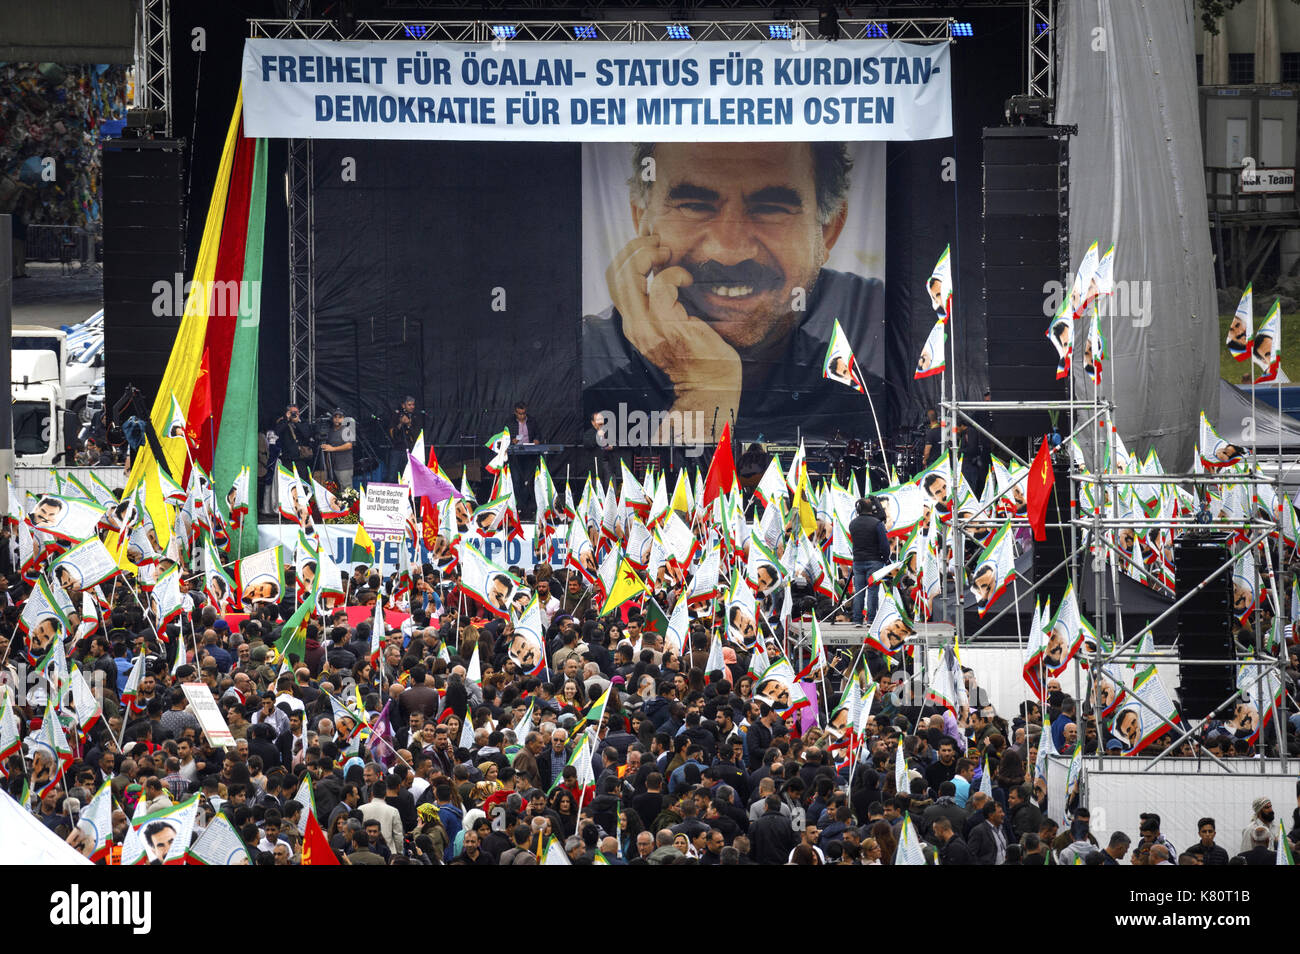 Cologne, Germany. 16th Sep, 2017. Participants of the international Kurdish culture festival wave flags in front of the stage with a huge picture of Öcalan, the leader of the Kurdistan Workers' Party (PKK), at the Deutzer shipyard in Cologne, Germany, 16 September 2017. Turkey ordered the German ambassador in Ankara to the Foreign Ministry protesting against the Kurdish festival in Cologne. Photo: Christoph Hardt/Geisler-Fotopres/Geisler-Fotopress/dpa/dpa/Alamy Live News - Stock Image